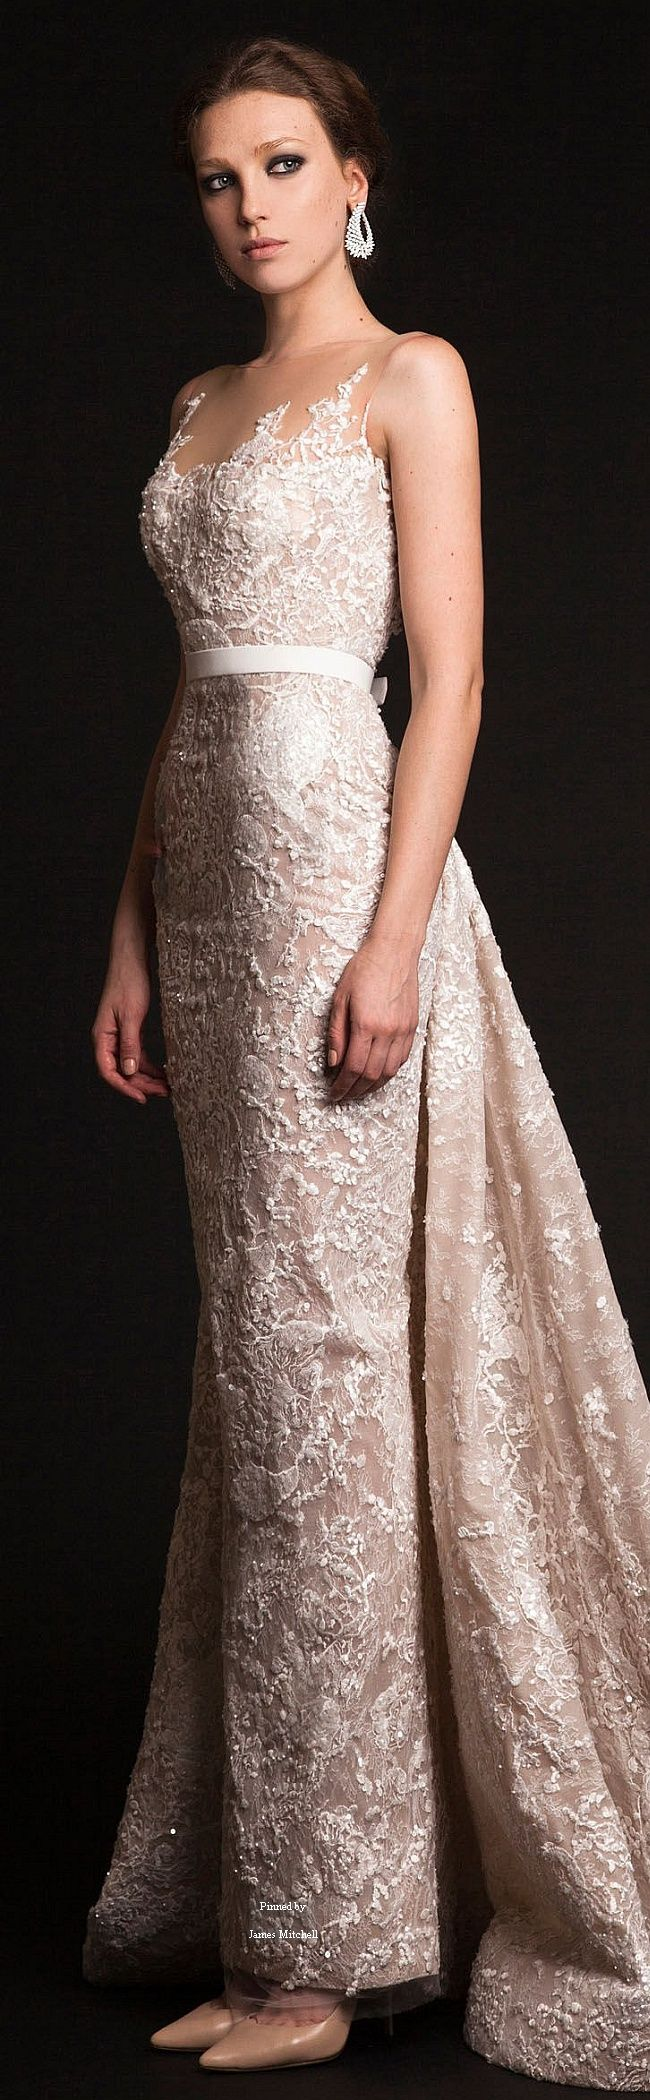 Krikor jabotian ss 2015 wedding dresses pinterest for High fashion couture